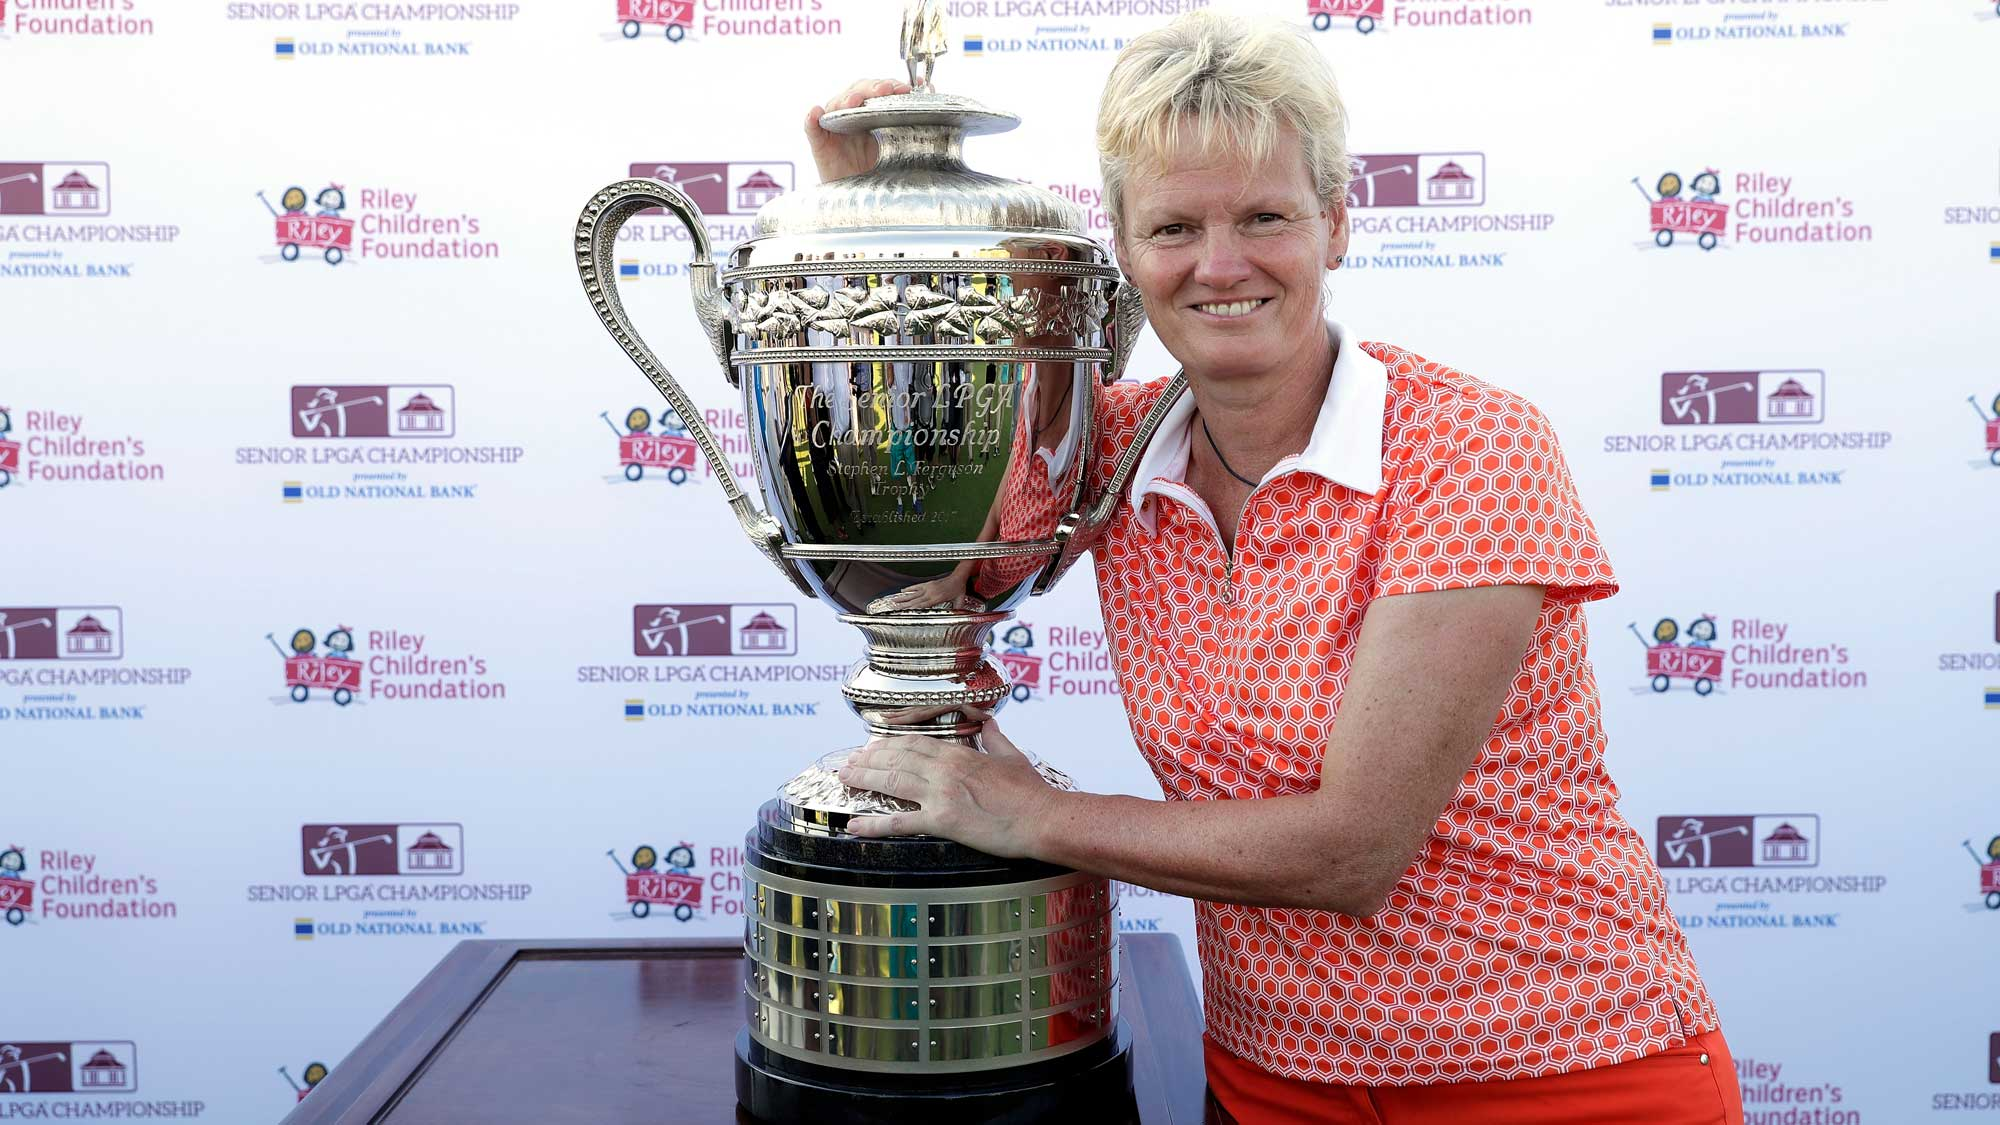 Trish Johnson of England poses with the trophy after winning the Senior LPGA Championship at the French Lick Resort